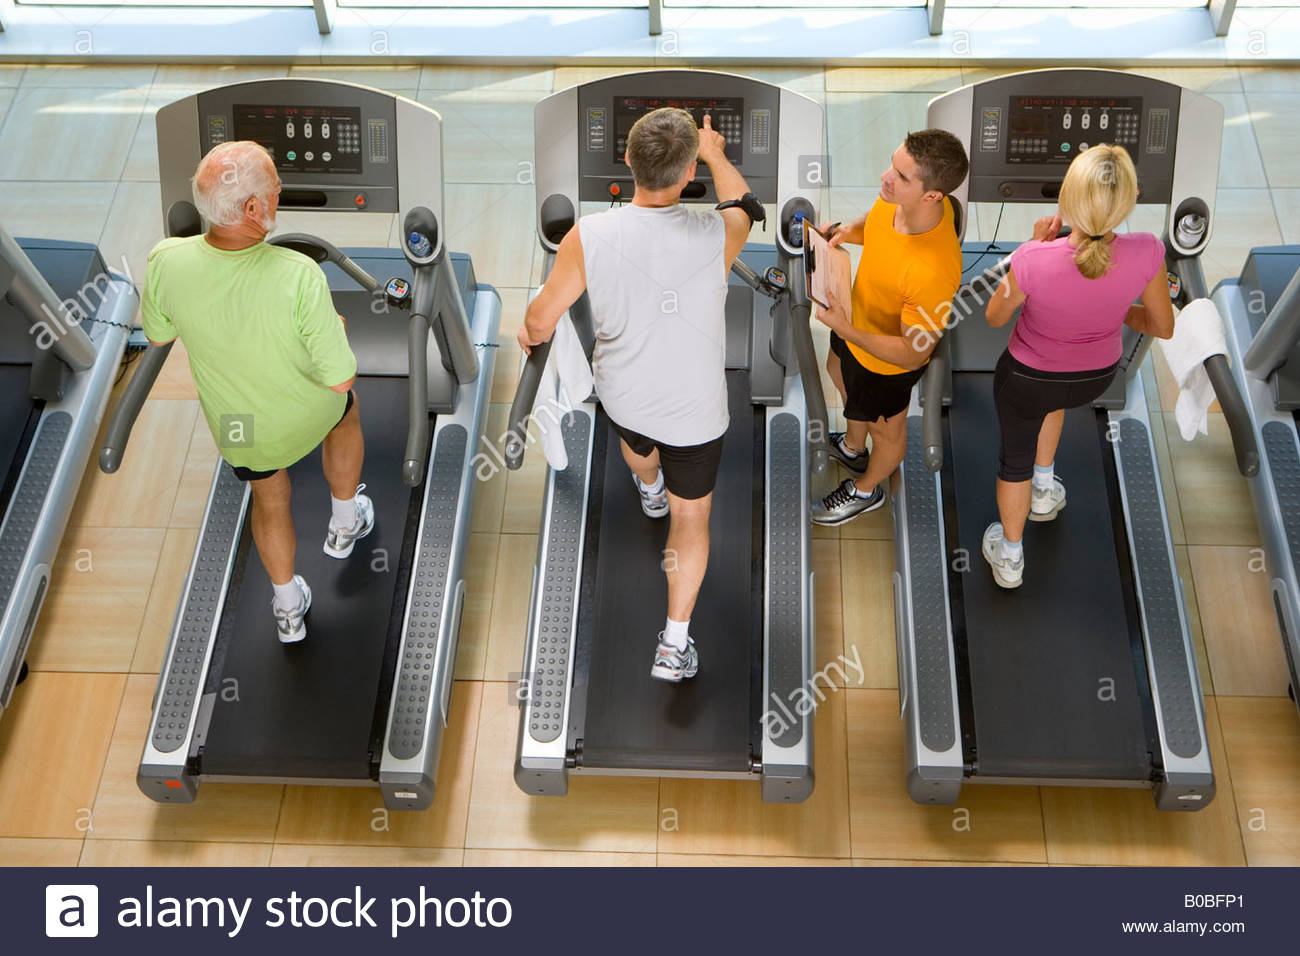 Man being trained in gym, elevated view - Stock Image